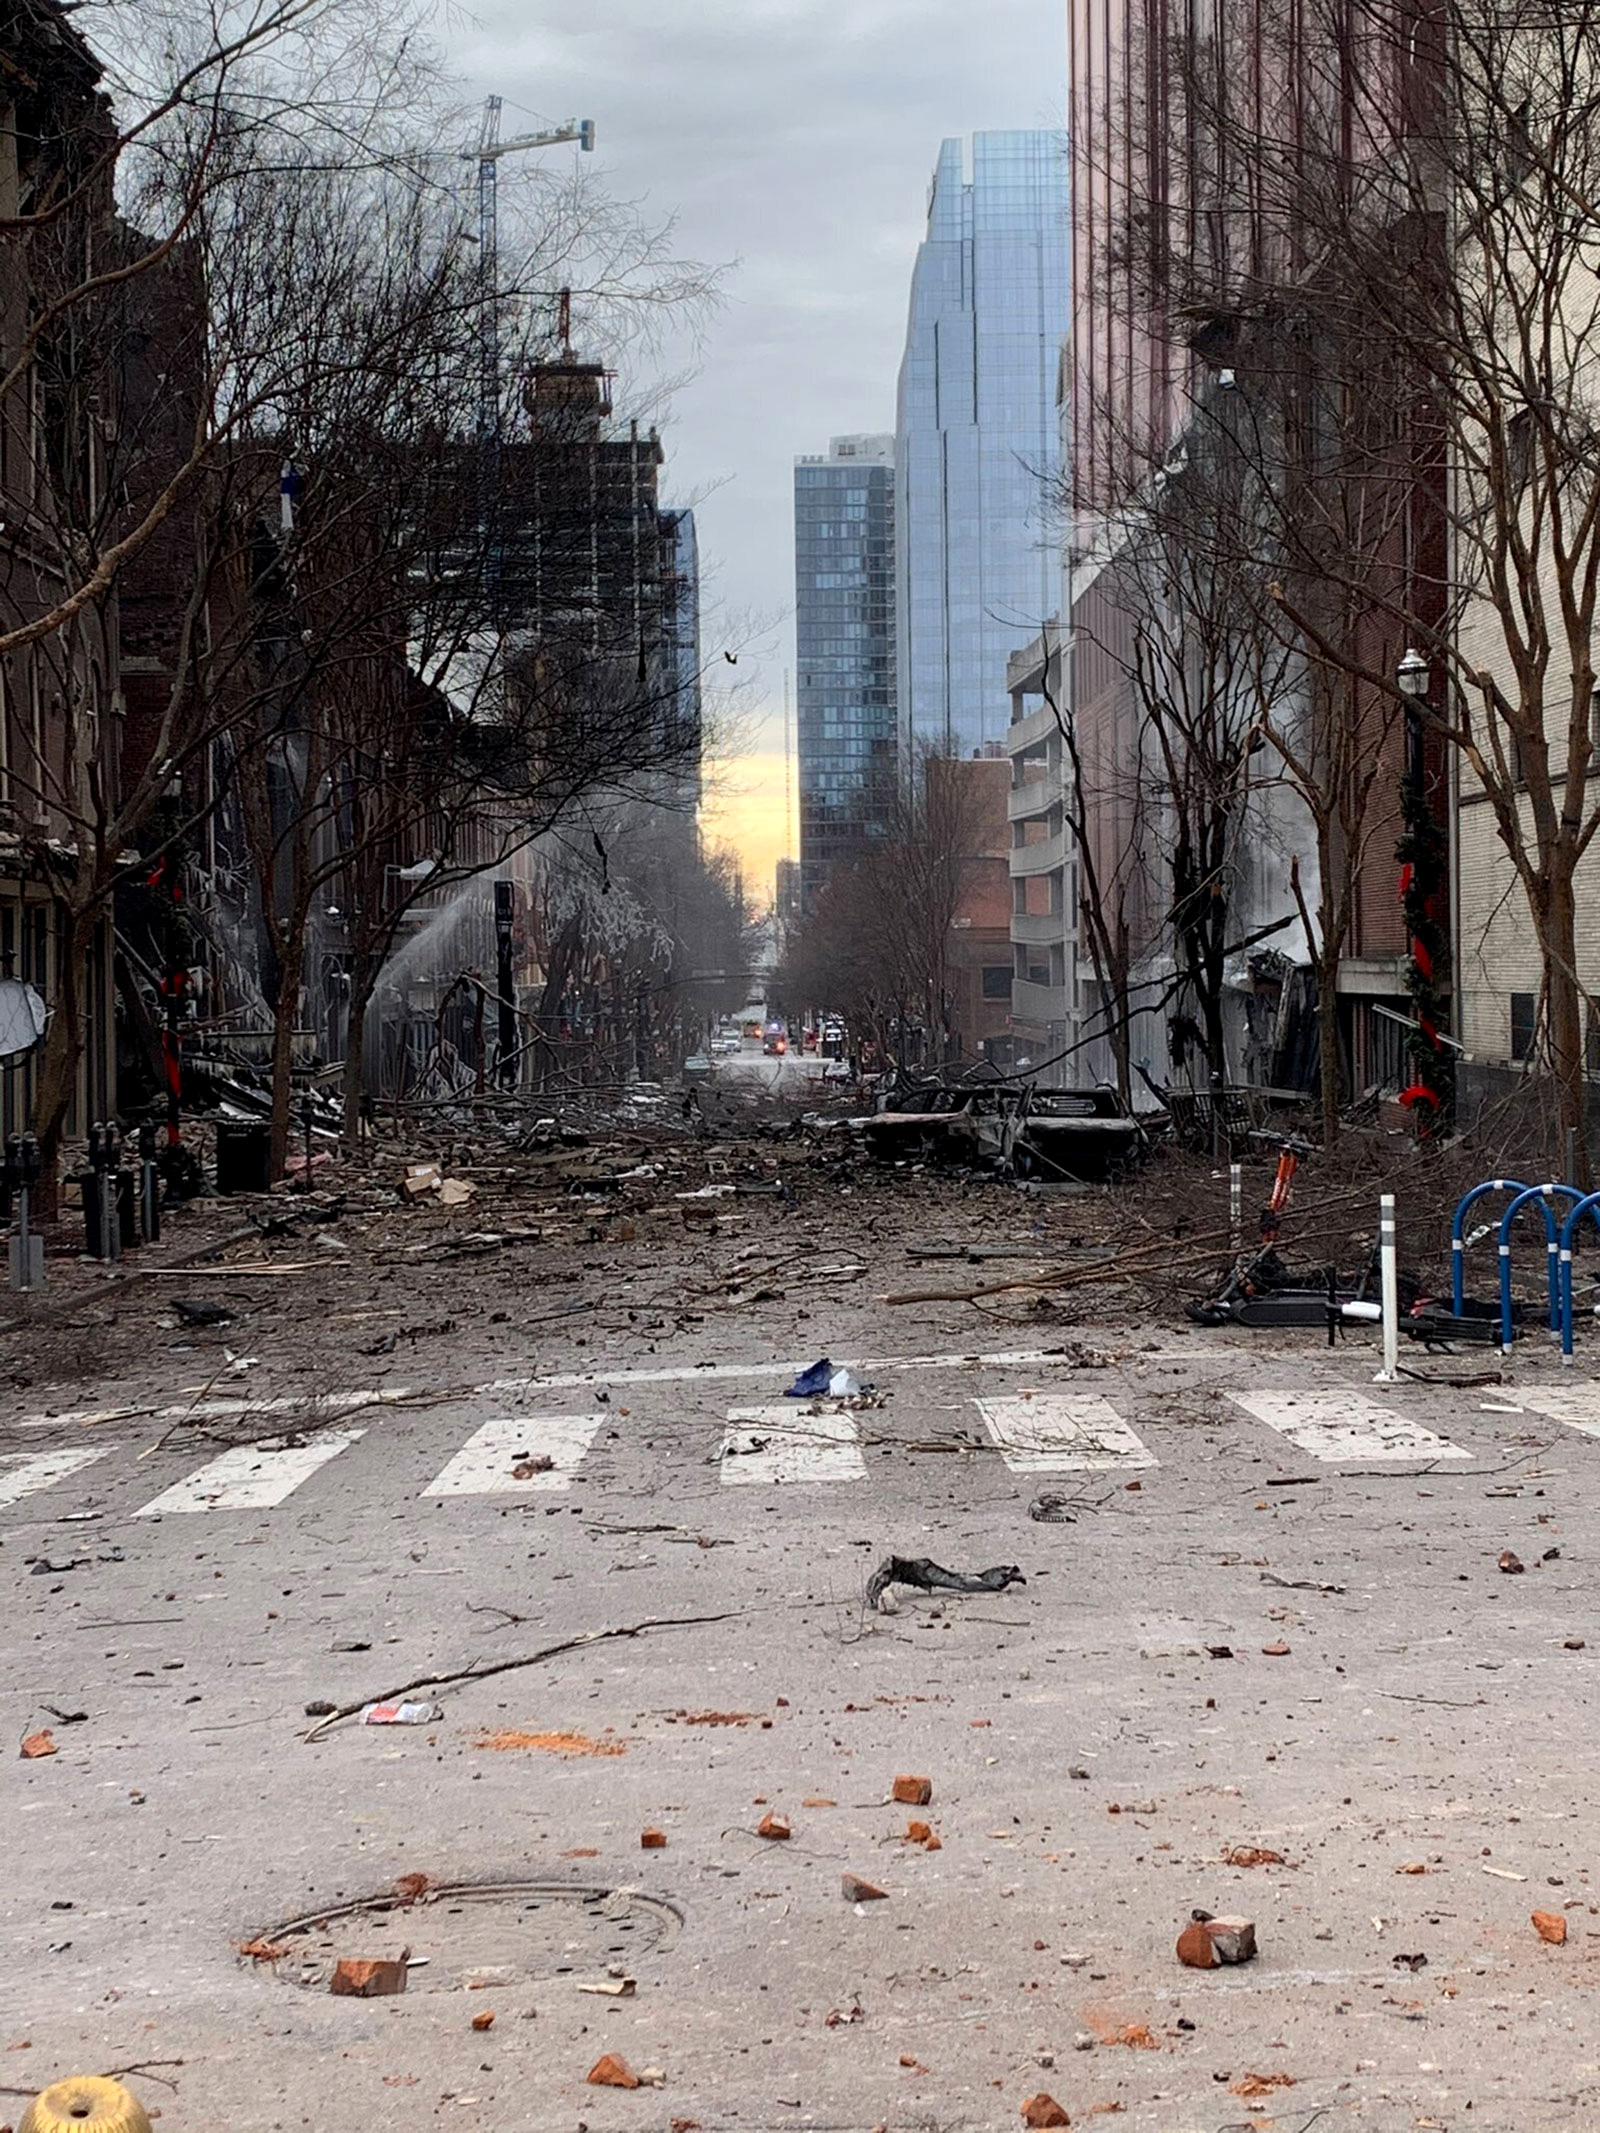 The aftermath of the Nashville bomb.